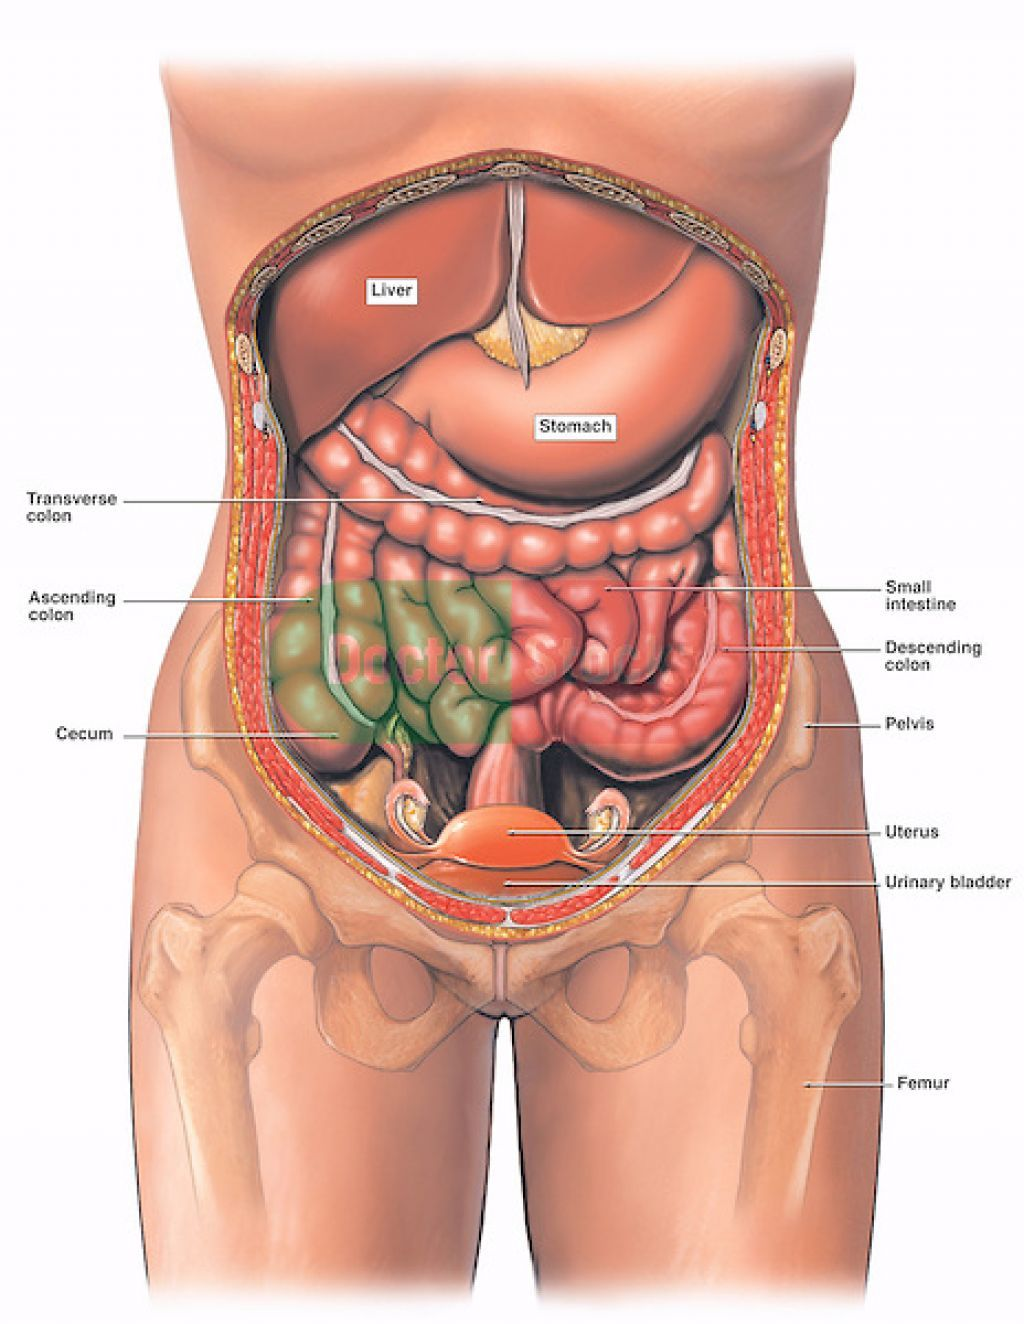 Pin By Heather L On Systems Digestive Pinterest Anatomy